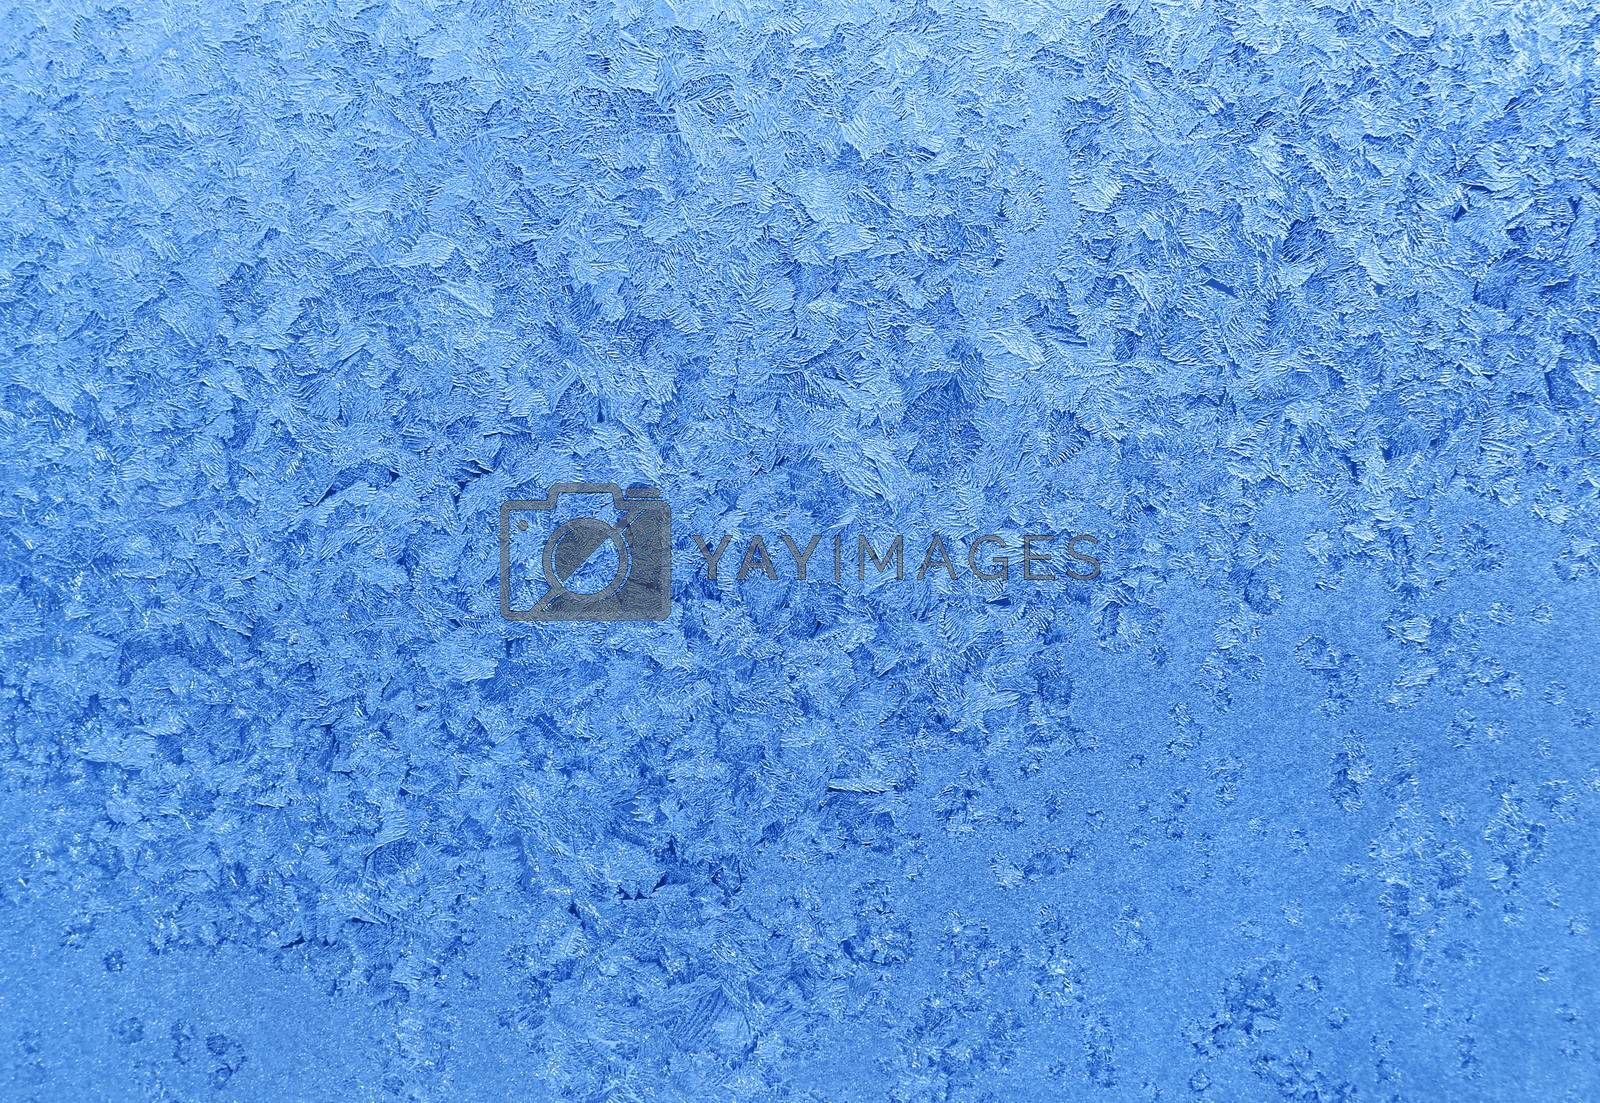 Natural ice pattern on winter glass by dink101